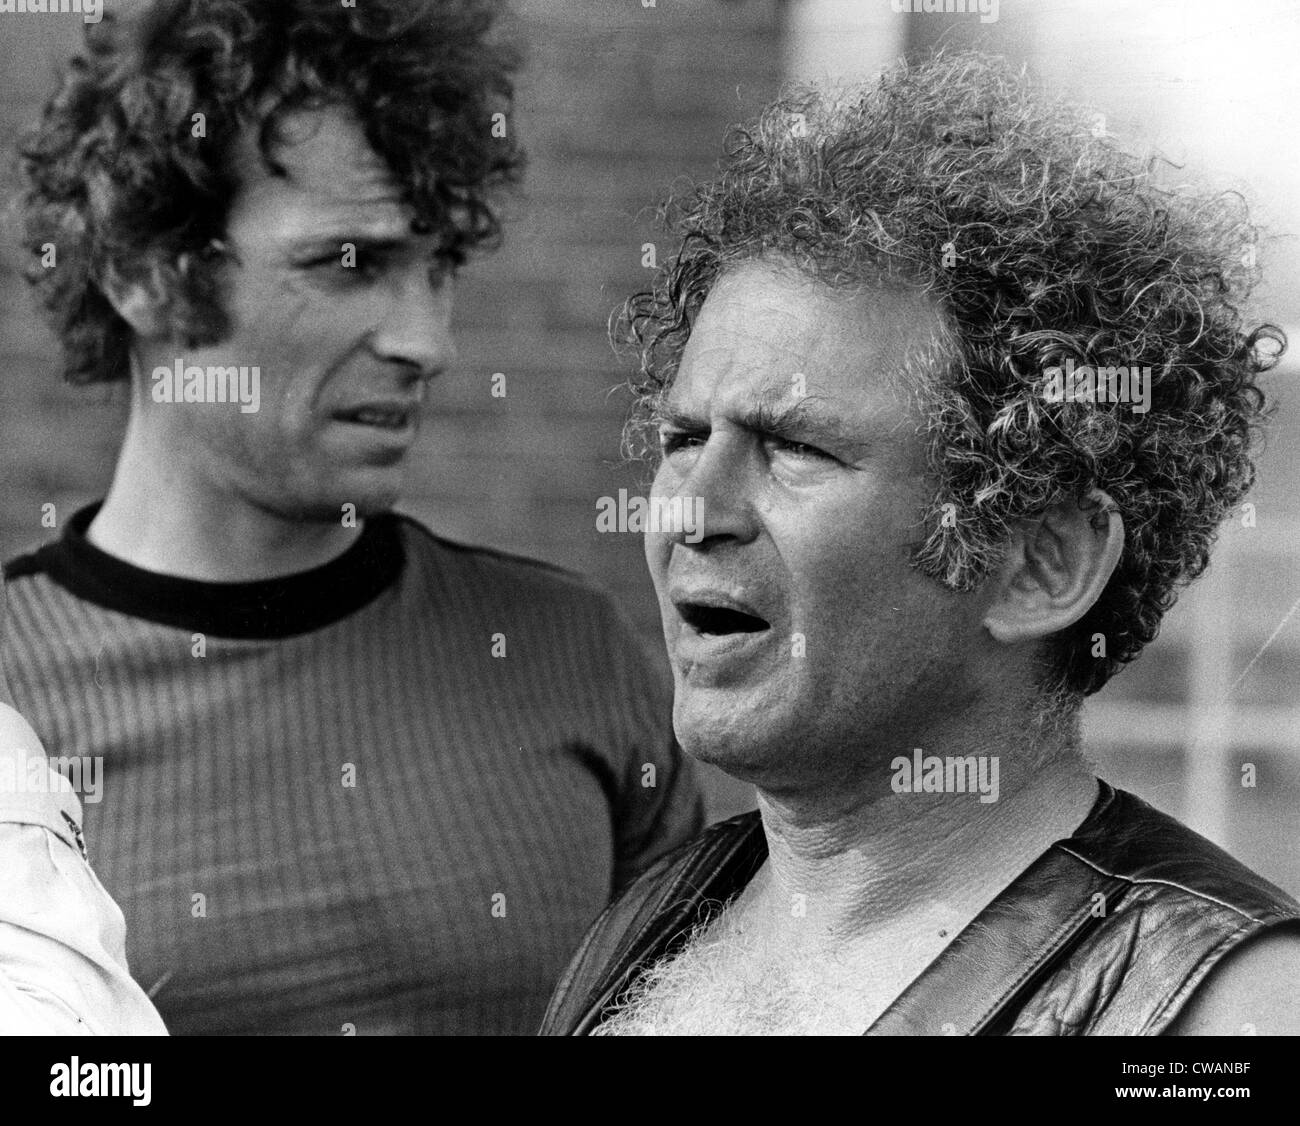 Rip Torn and writer-director Norman Mailer, on the set of MAIDSTONE, 1969. Courtesy: CSU Archives / Everett Collection - Stock Image